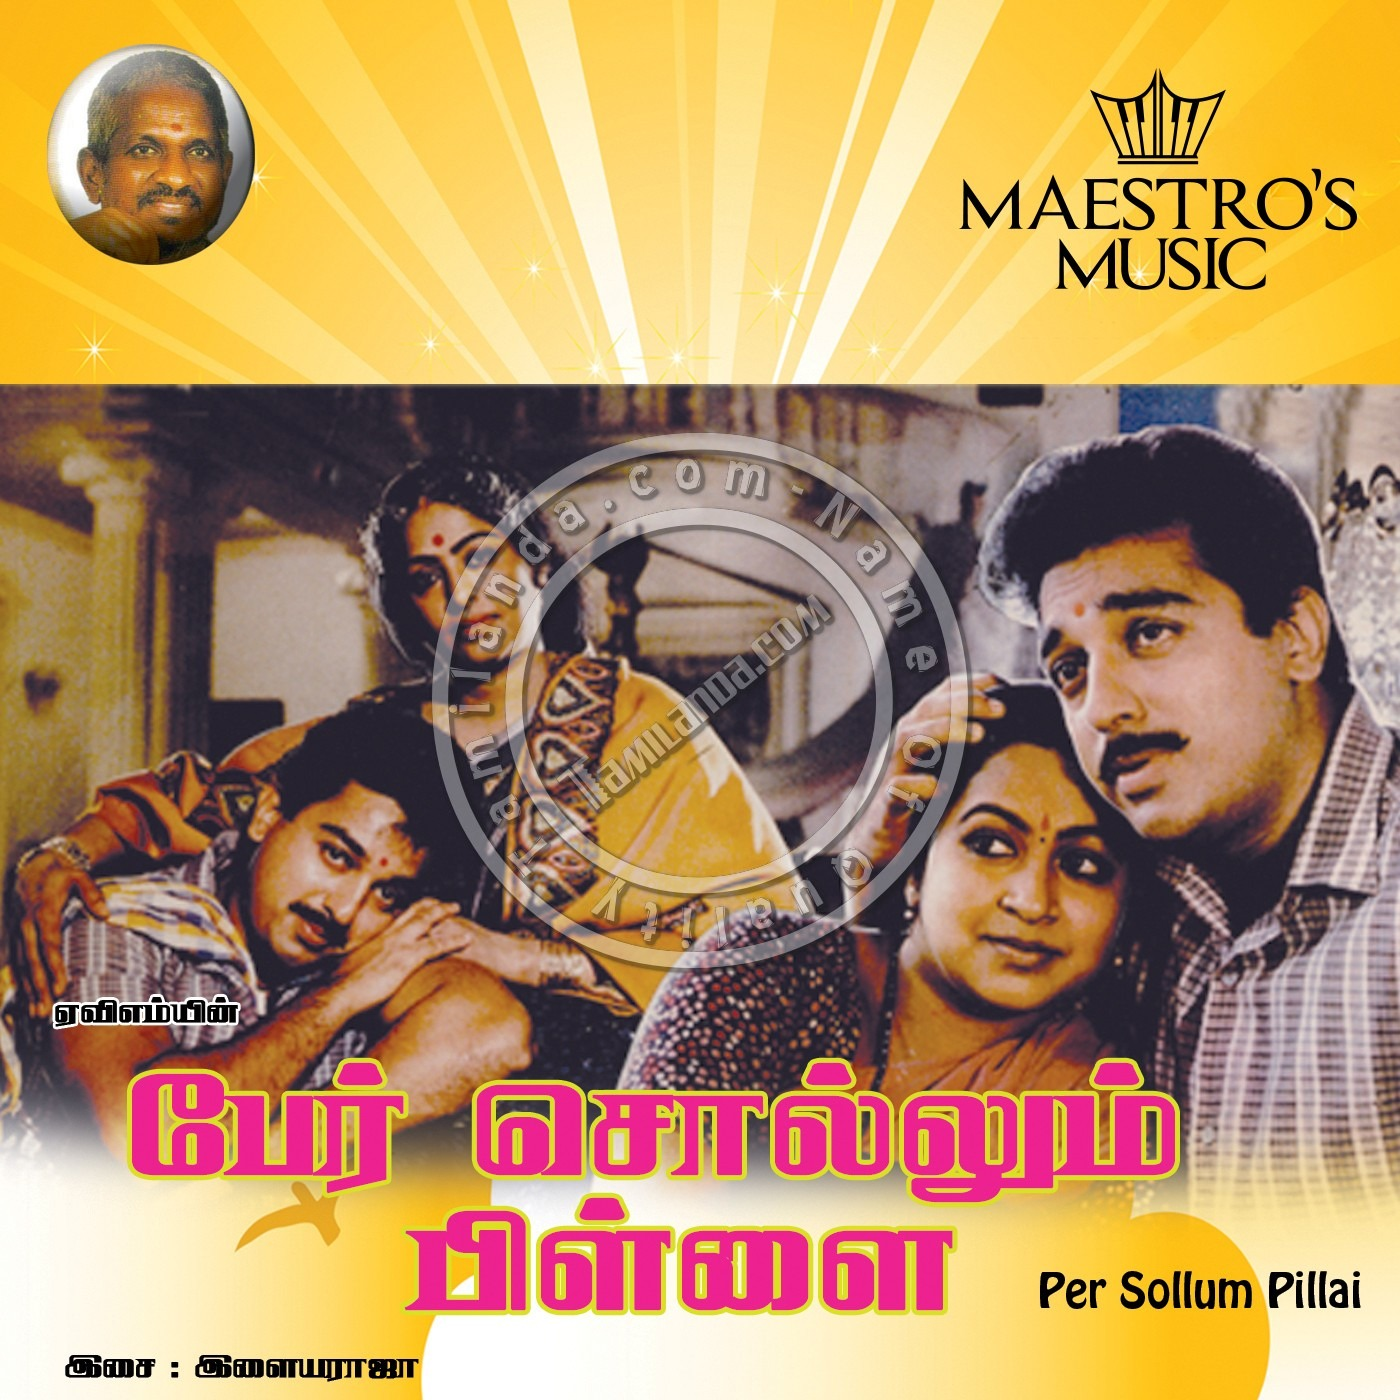 Per Sollum Pillai 16 BIT FLAC Songs